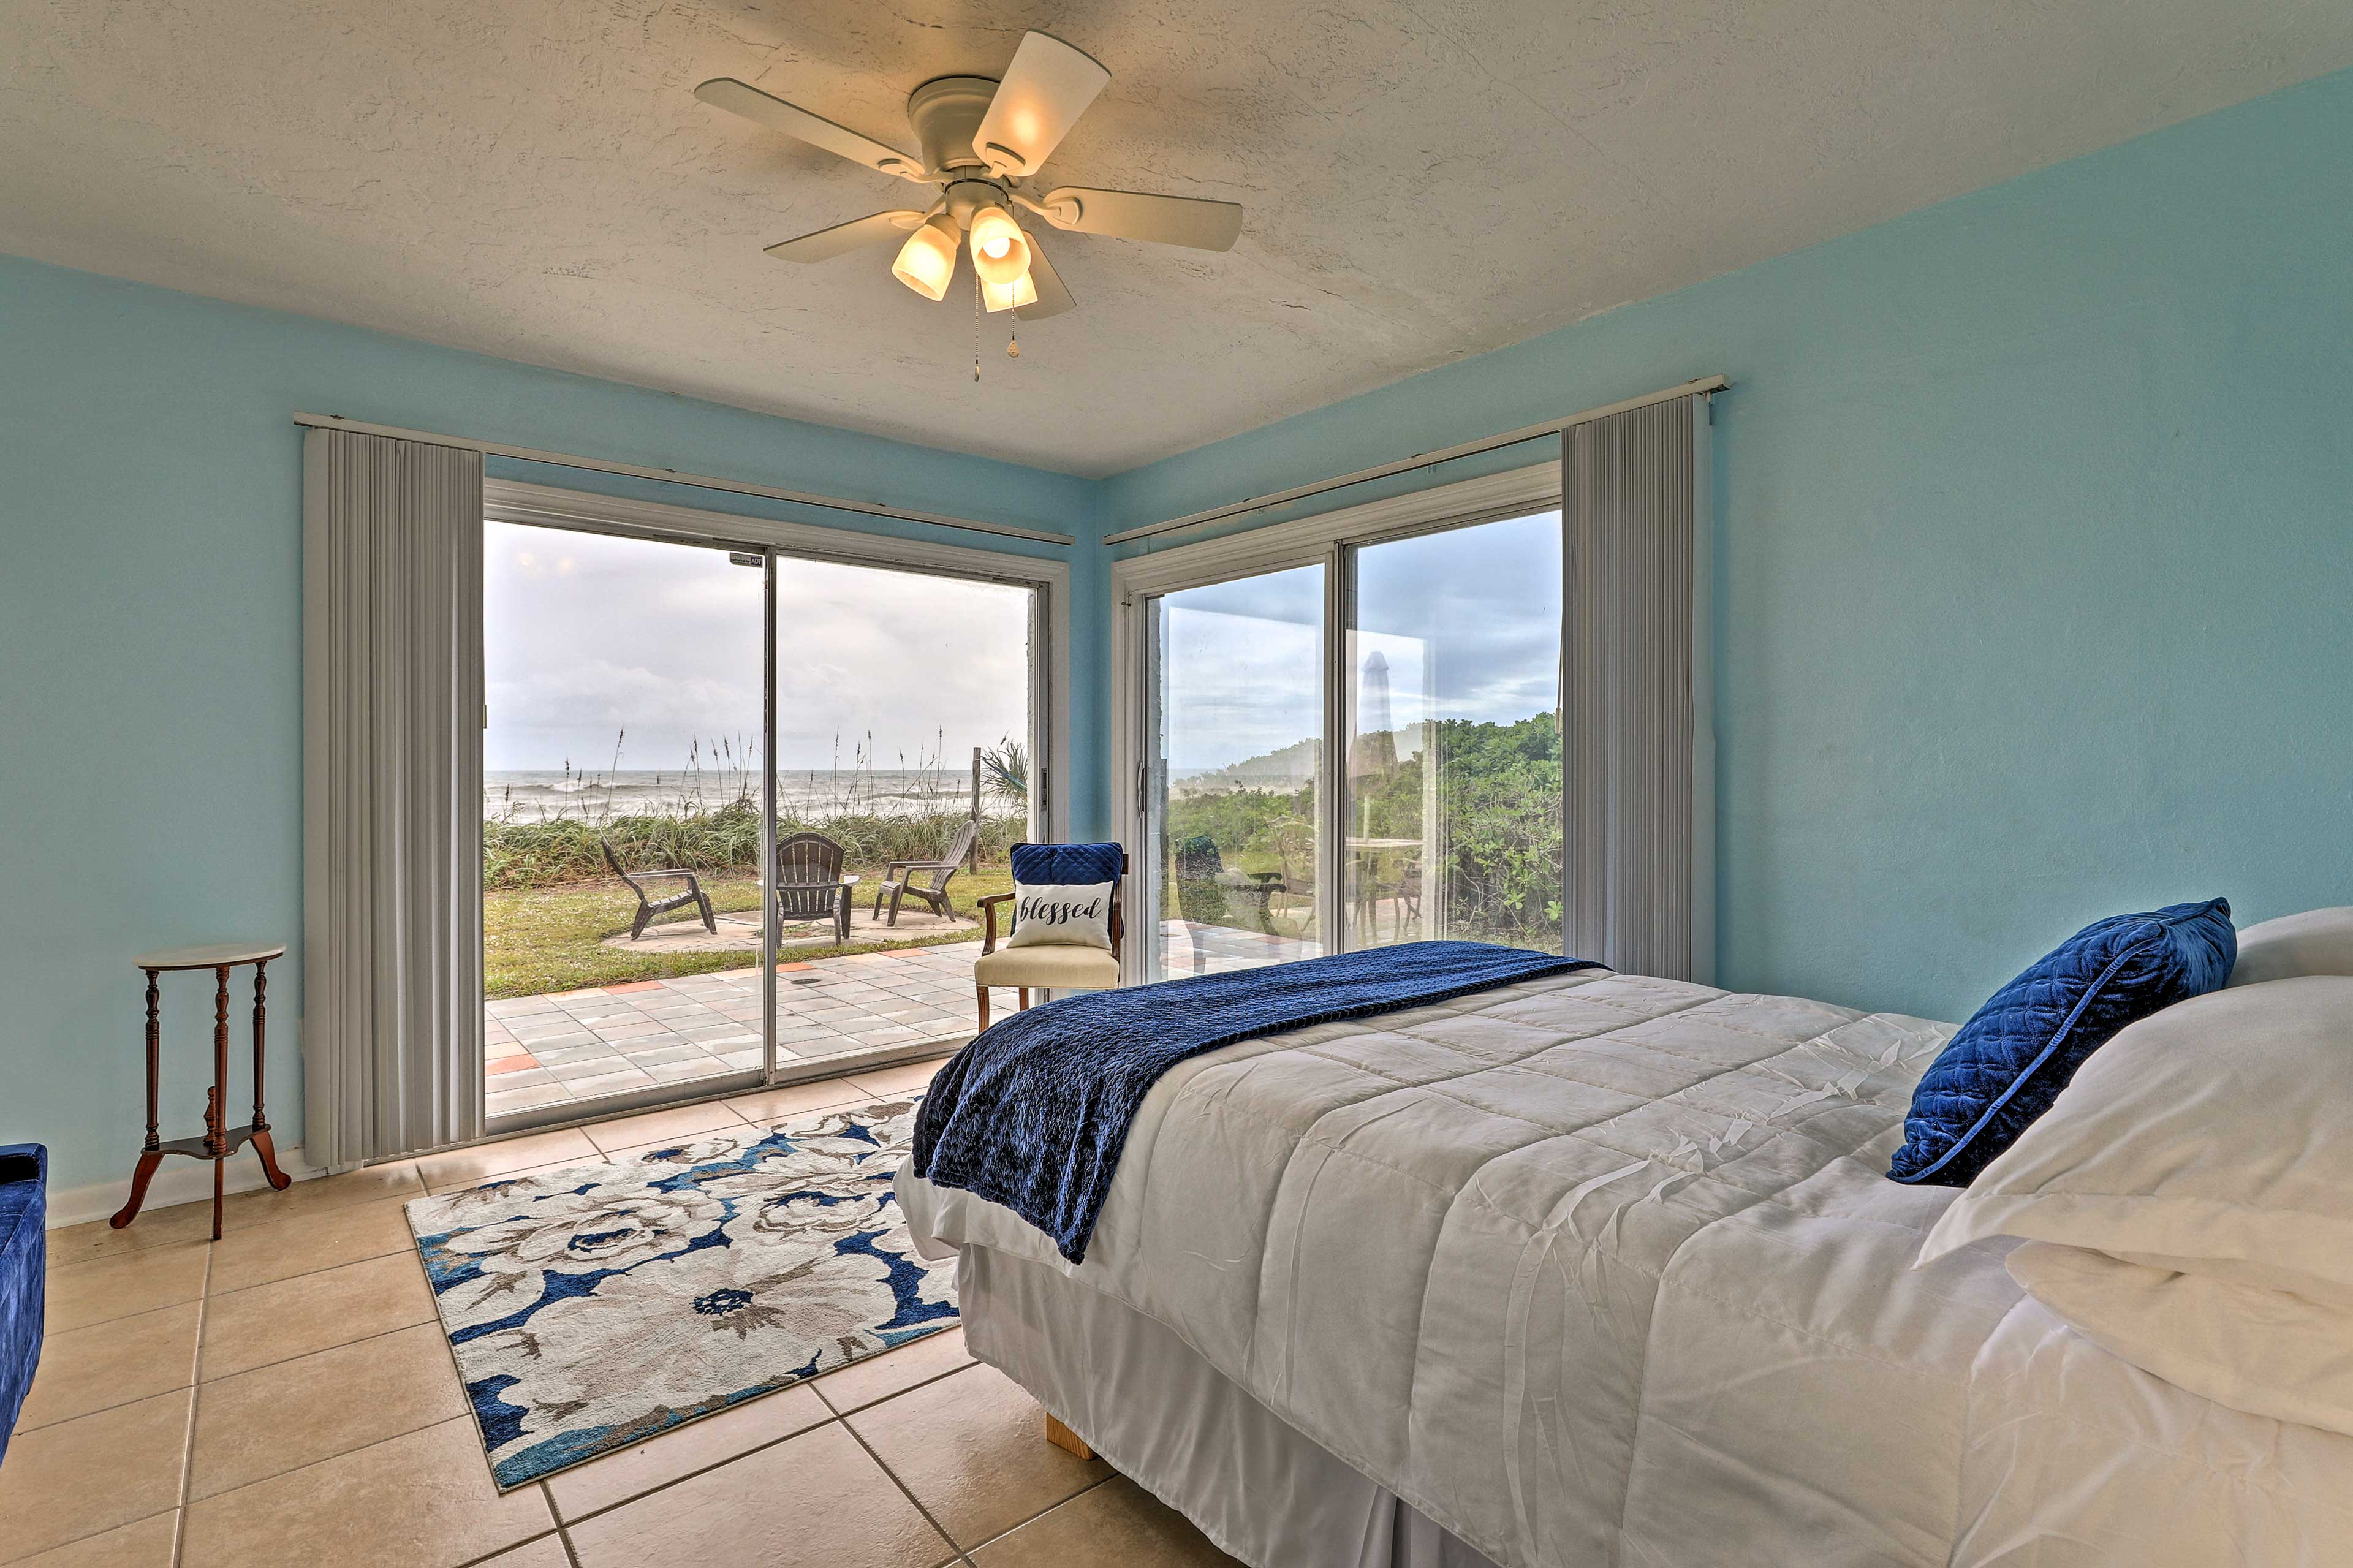 Select between the 2 bedrooms to take solace in.